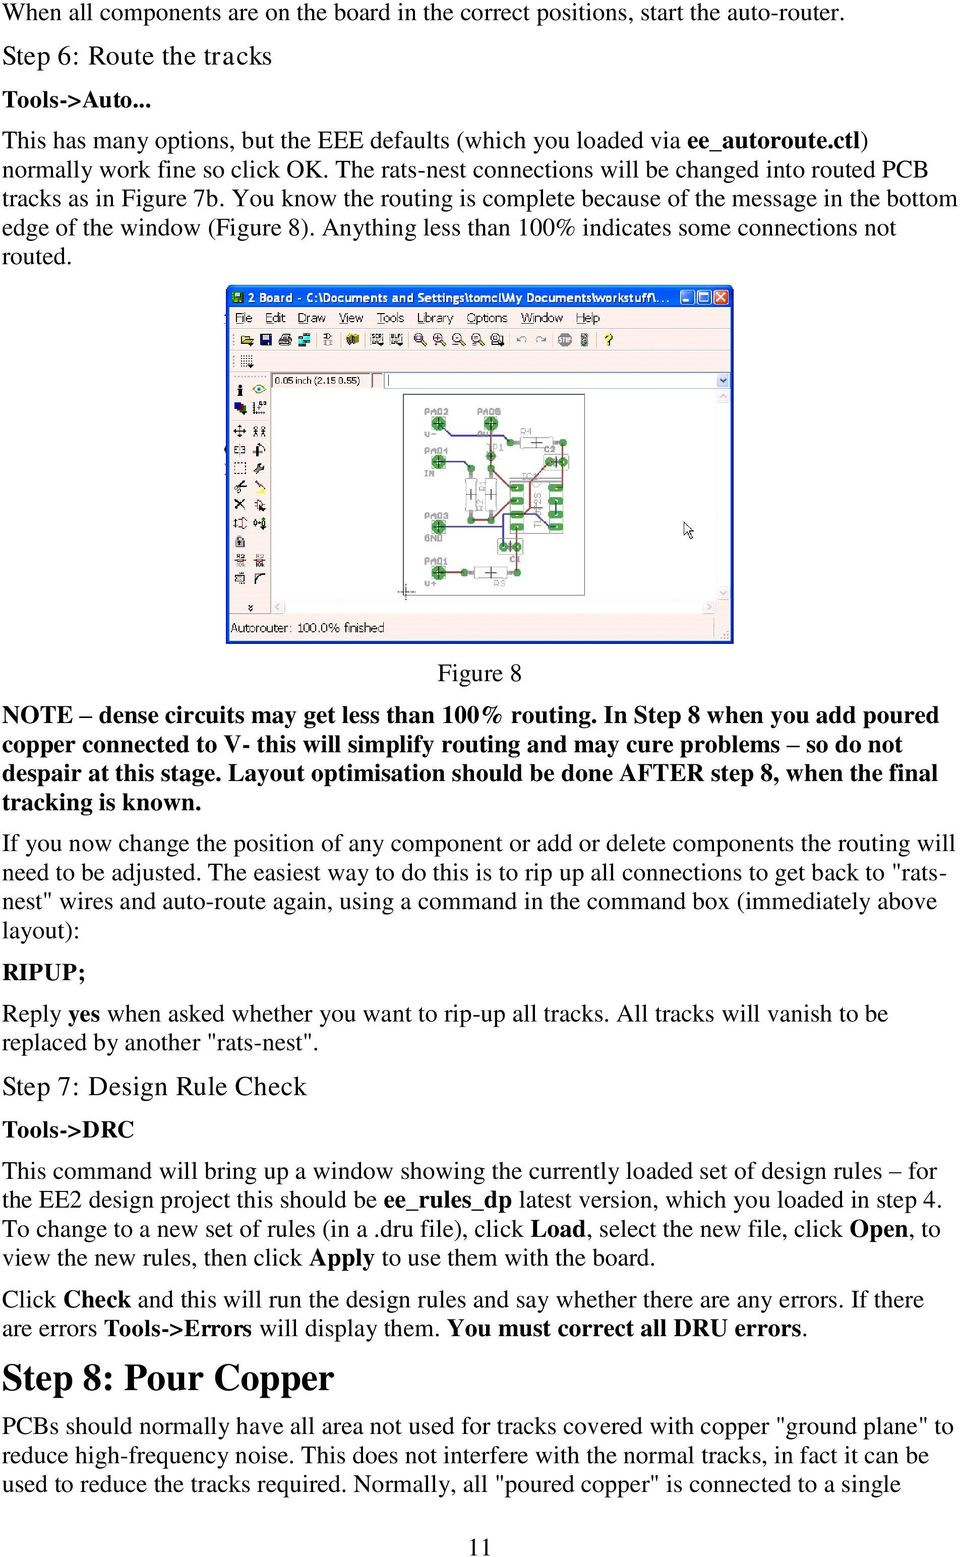 The Eagle Schematic Pcb Layout Editor A Guide Pdf For Design Including Capture Board And Autorouter You Know Routing Is Complete Because Of Message In Bottom Edge